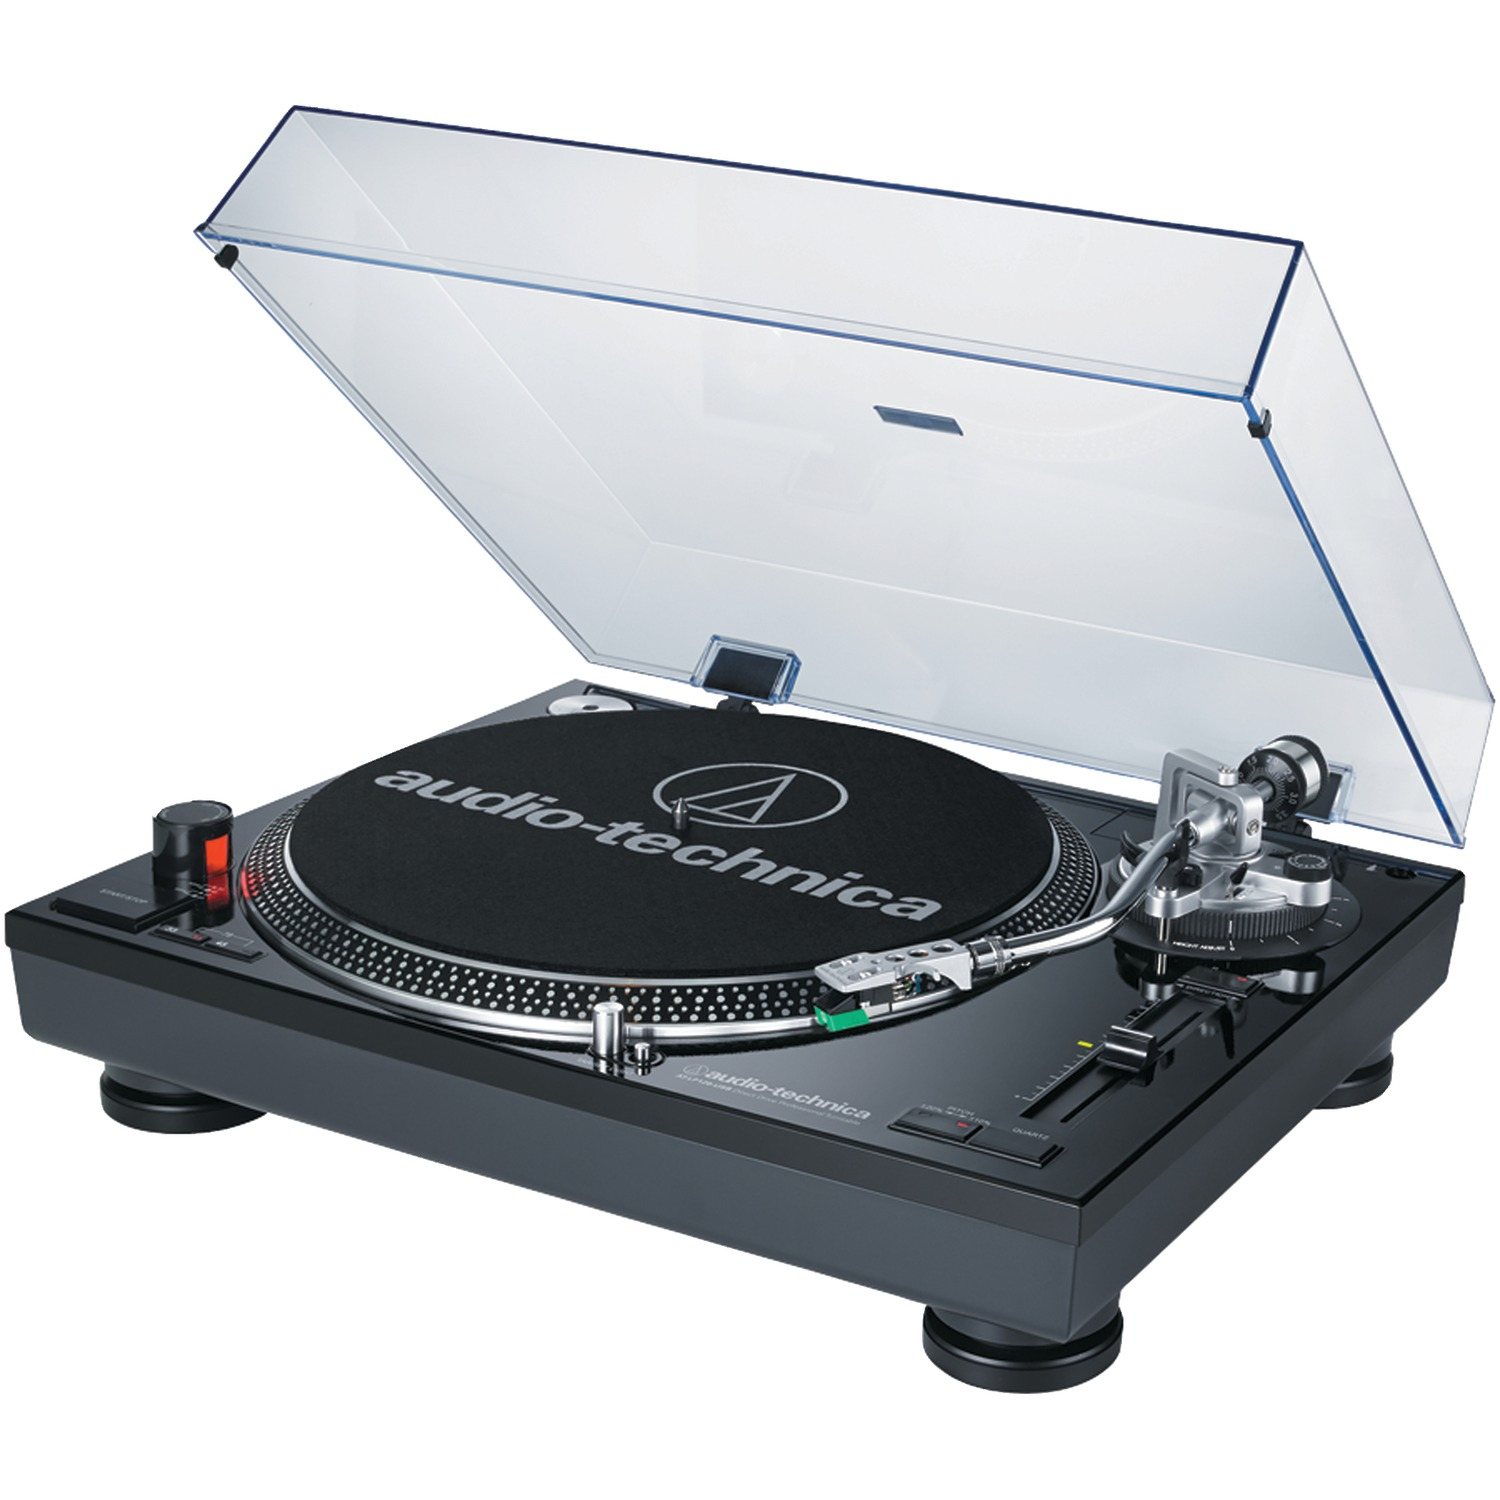 Audio-Technica AT-LP120BK-USB Direct-Drive Professional USB & Analog Stereo Turntable (Black)